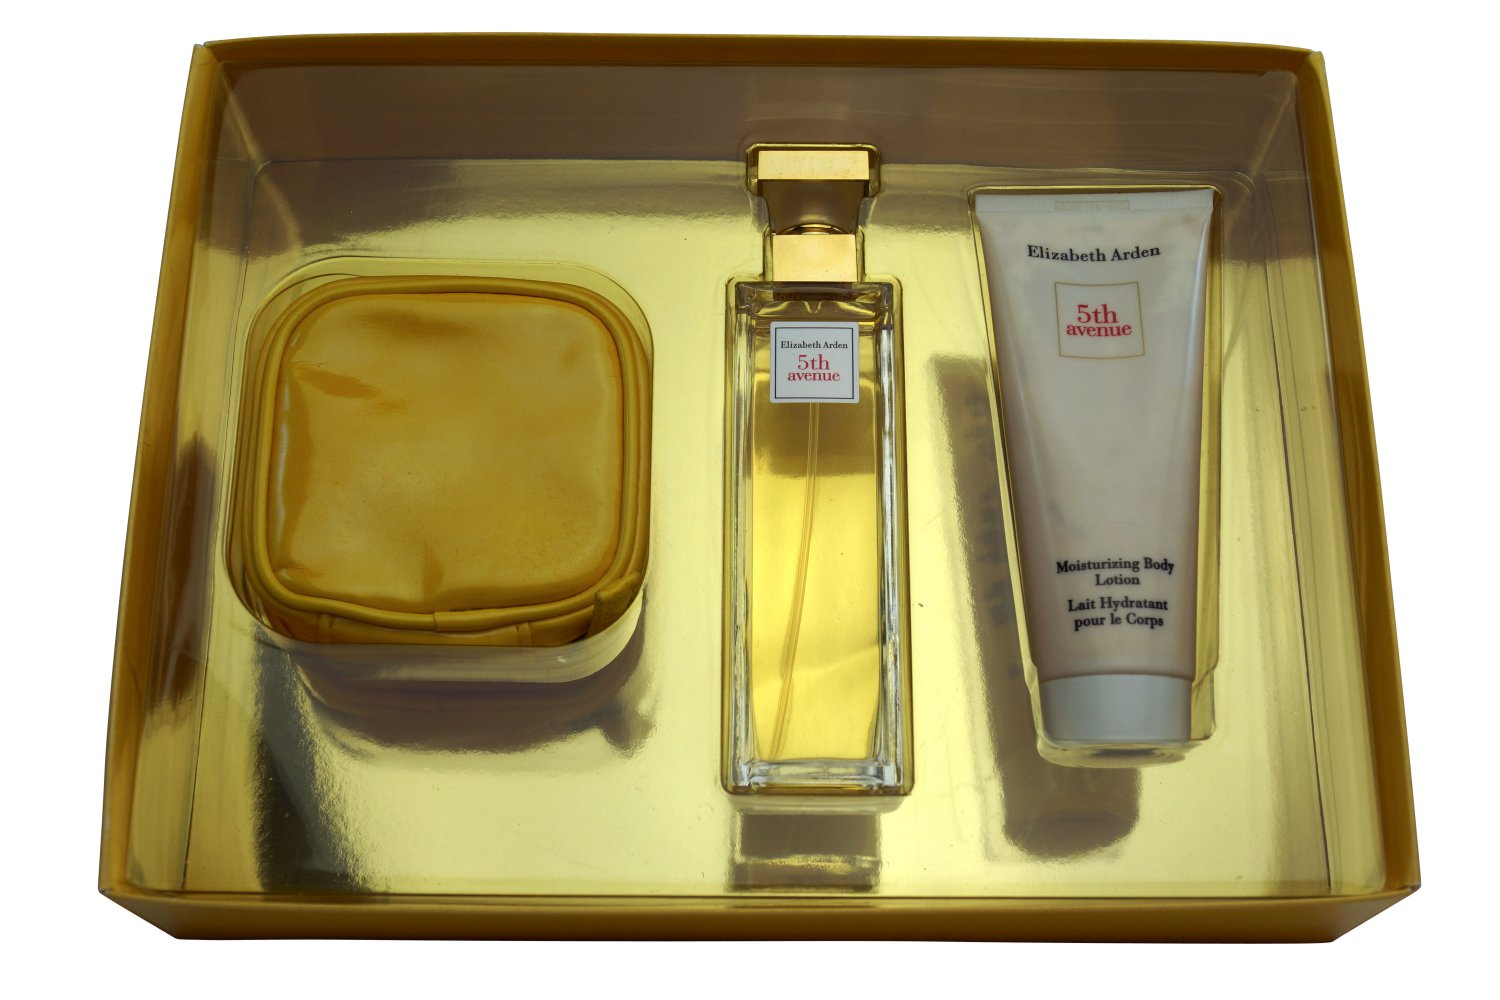 Elizabeth Arden 5th Ave EDP 2.5 oz + Body Lotion 3.3 oz + Makeup Pouch